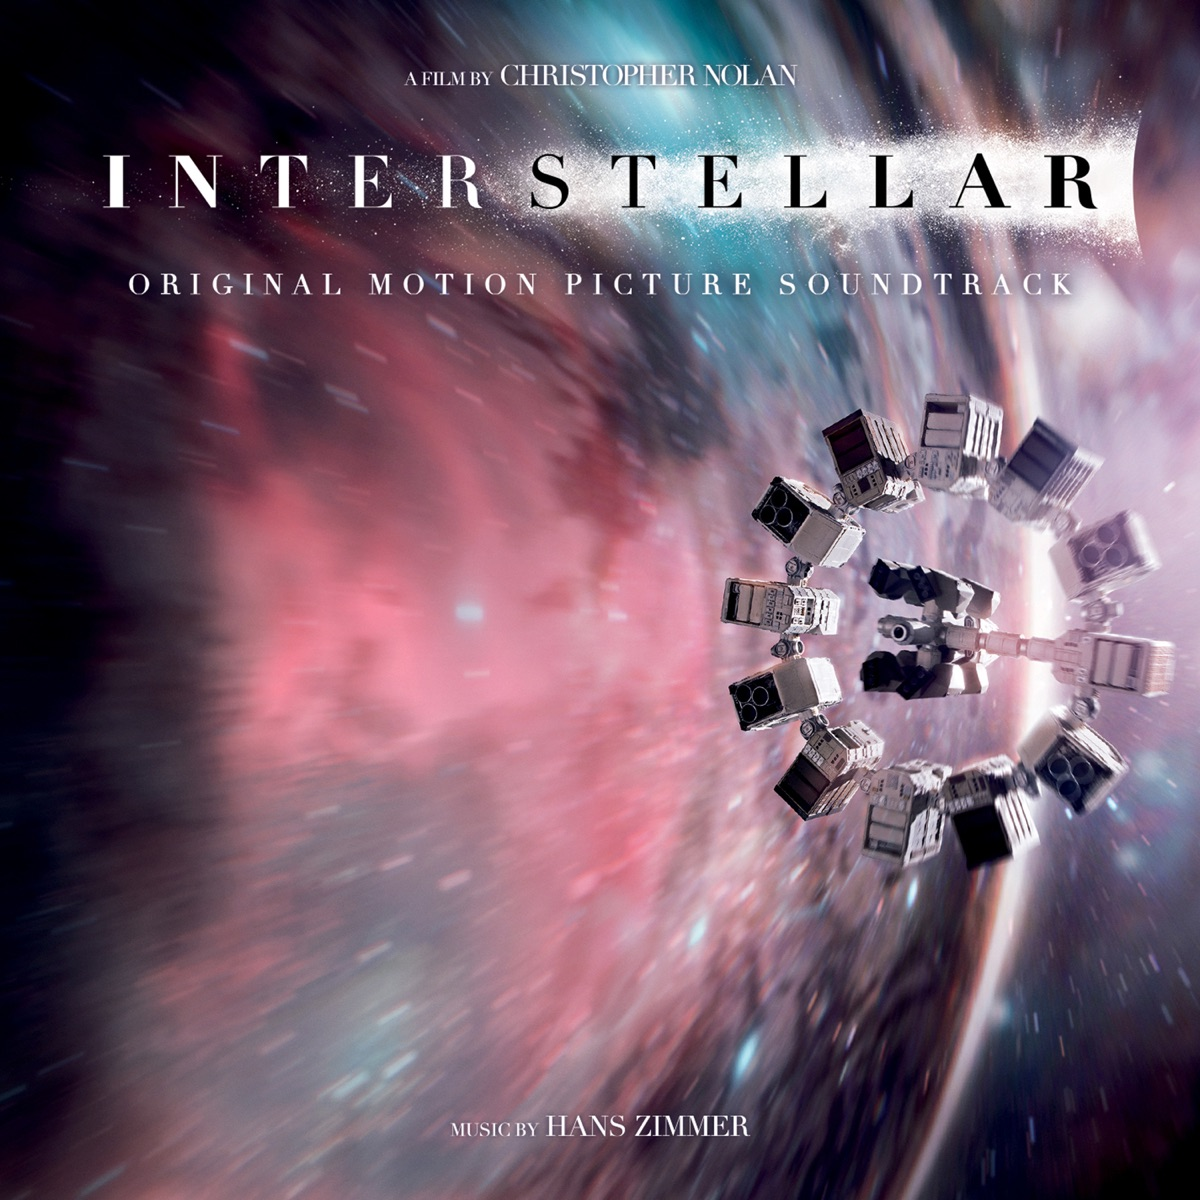 Interstellar Original Motion Picture Soundtrack Deluxe Version Hans Zimmer CD cover